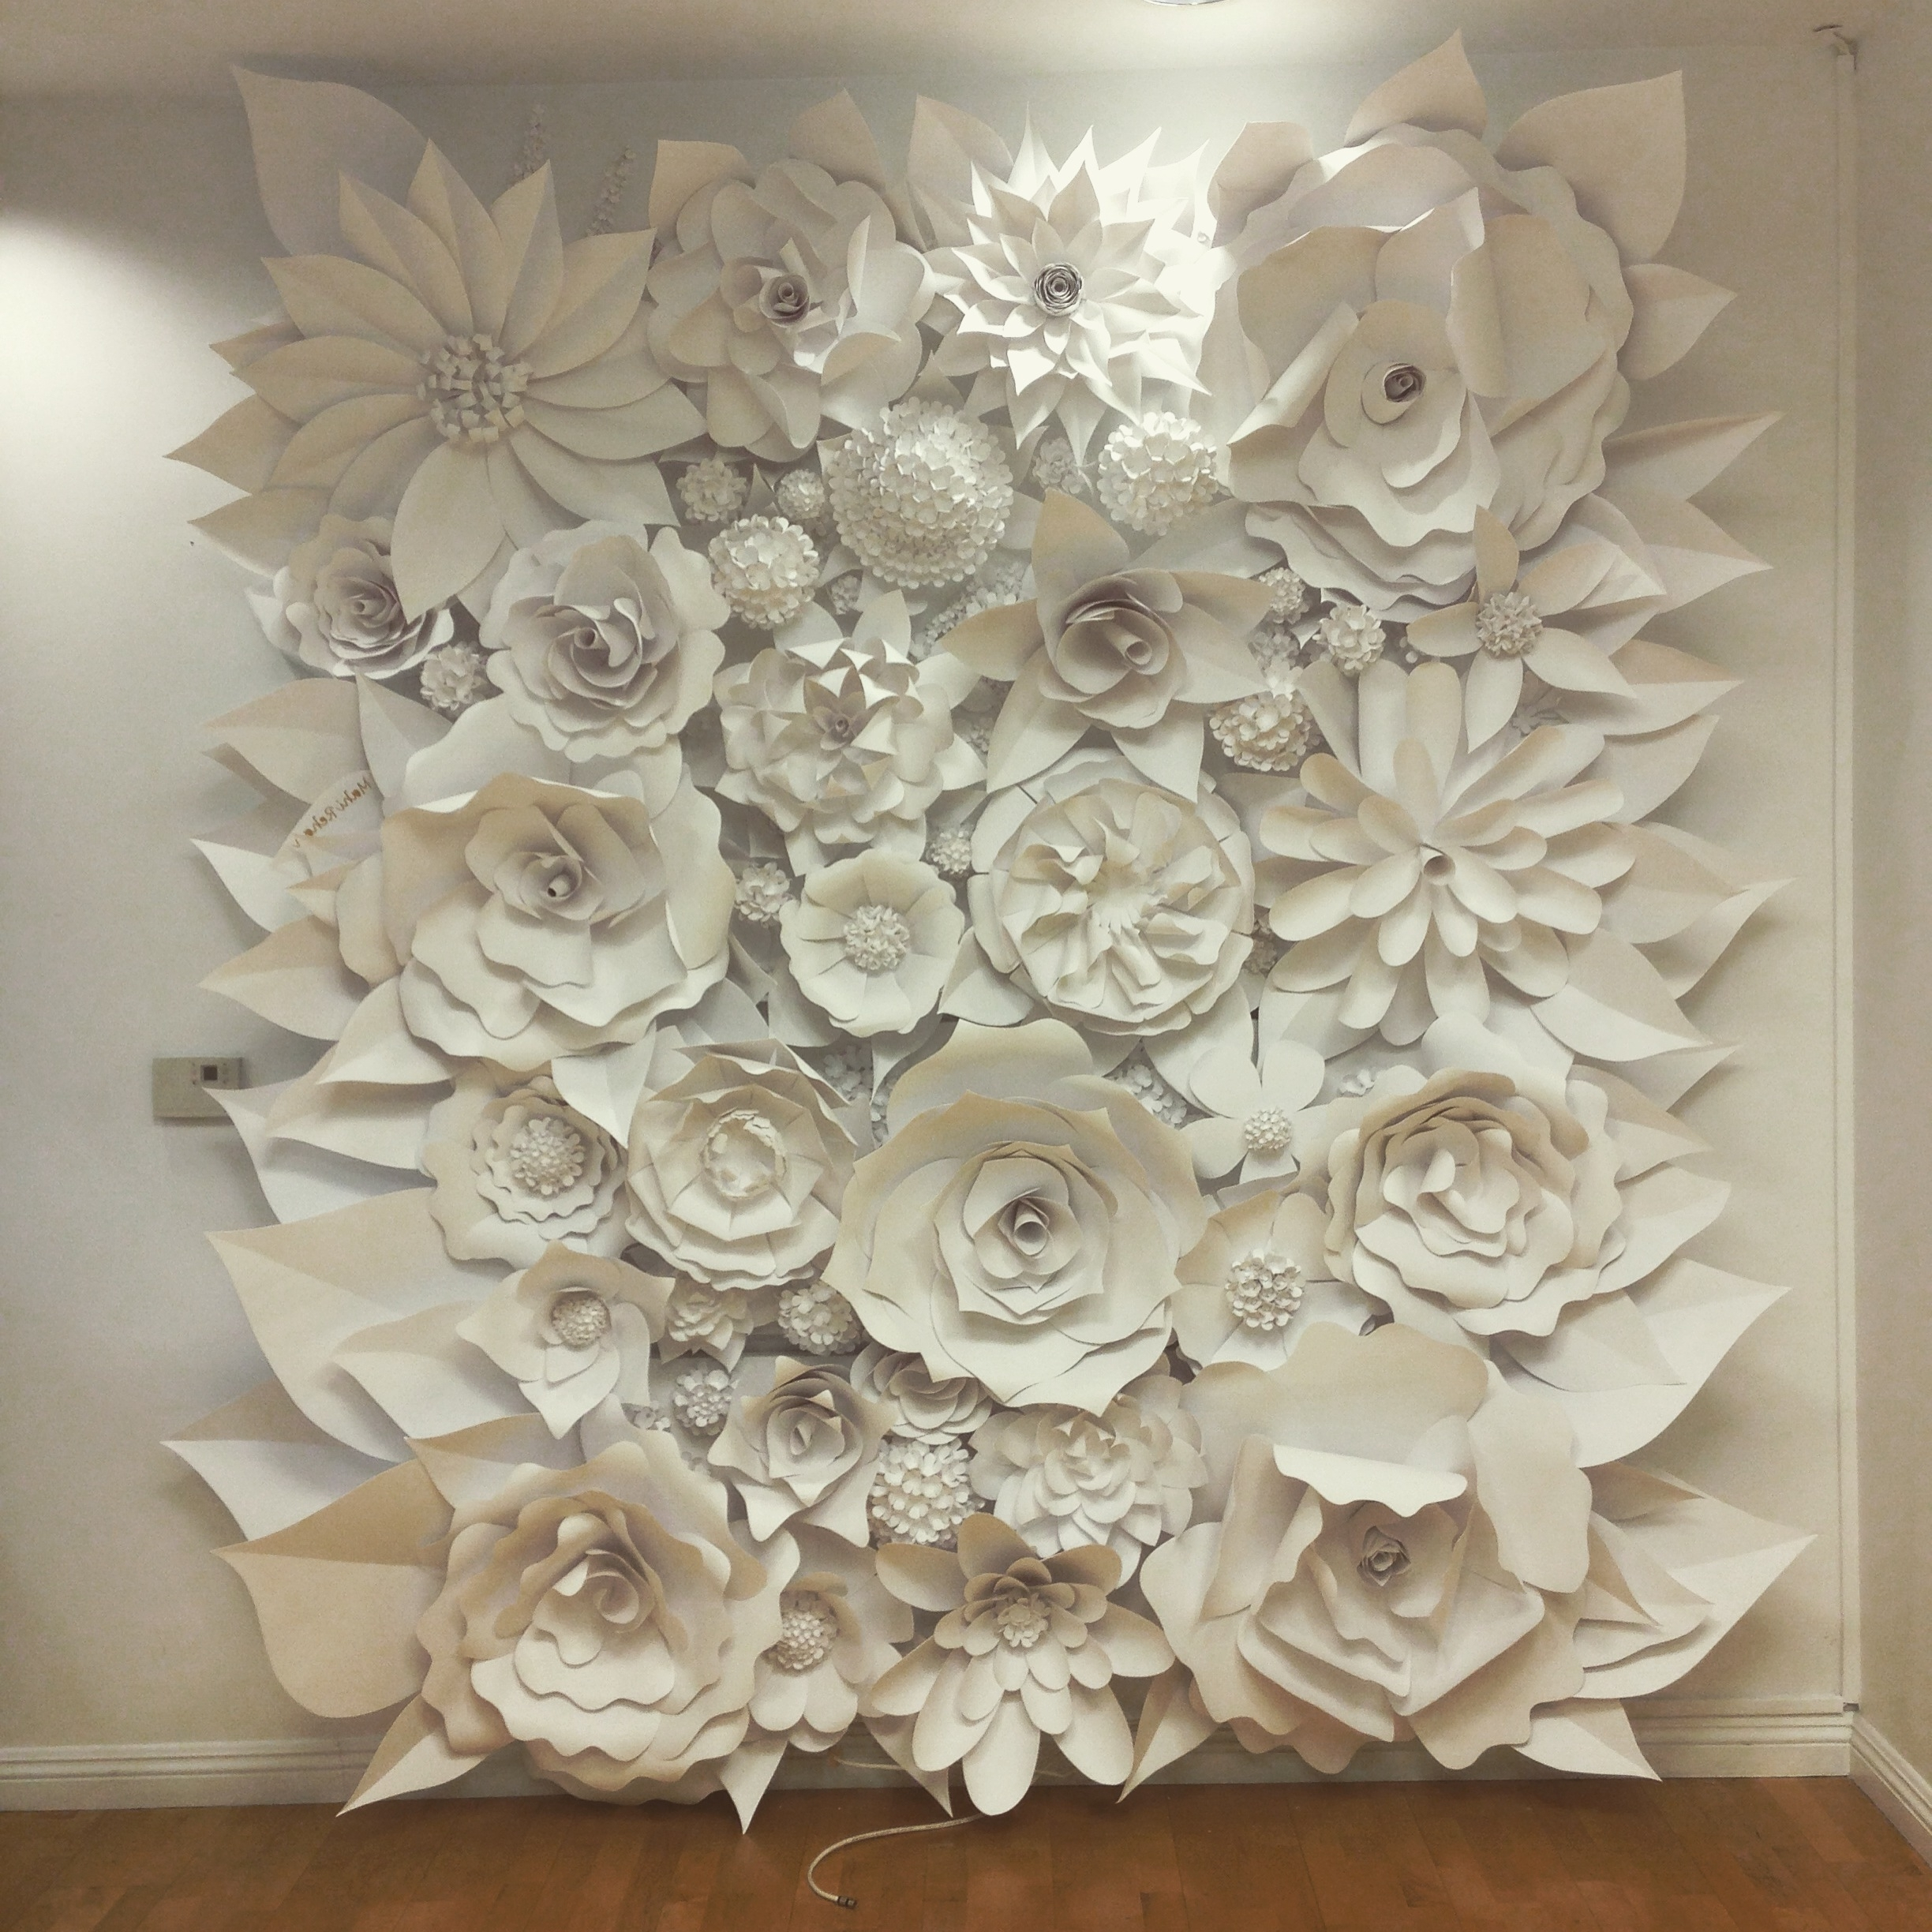 3D Flower Wall Art Pertaining To Well Liked Diy 3D Flower Canvas Wall Art Diy Mothers Day Gift Youtube (Gallery 2 of 15)